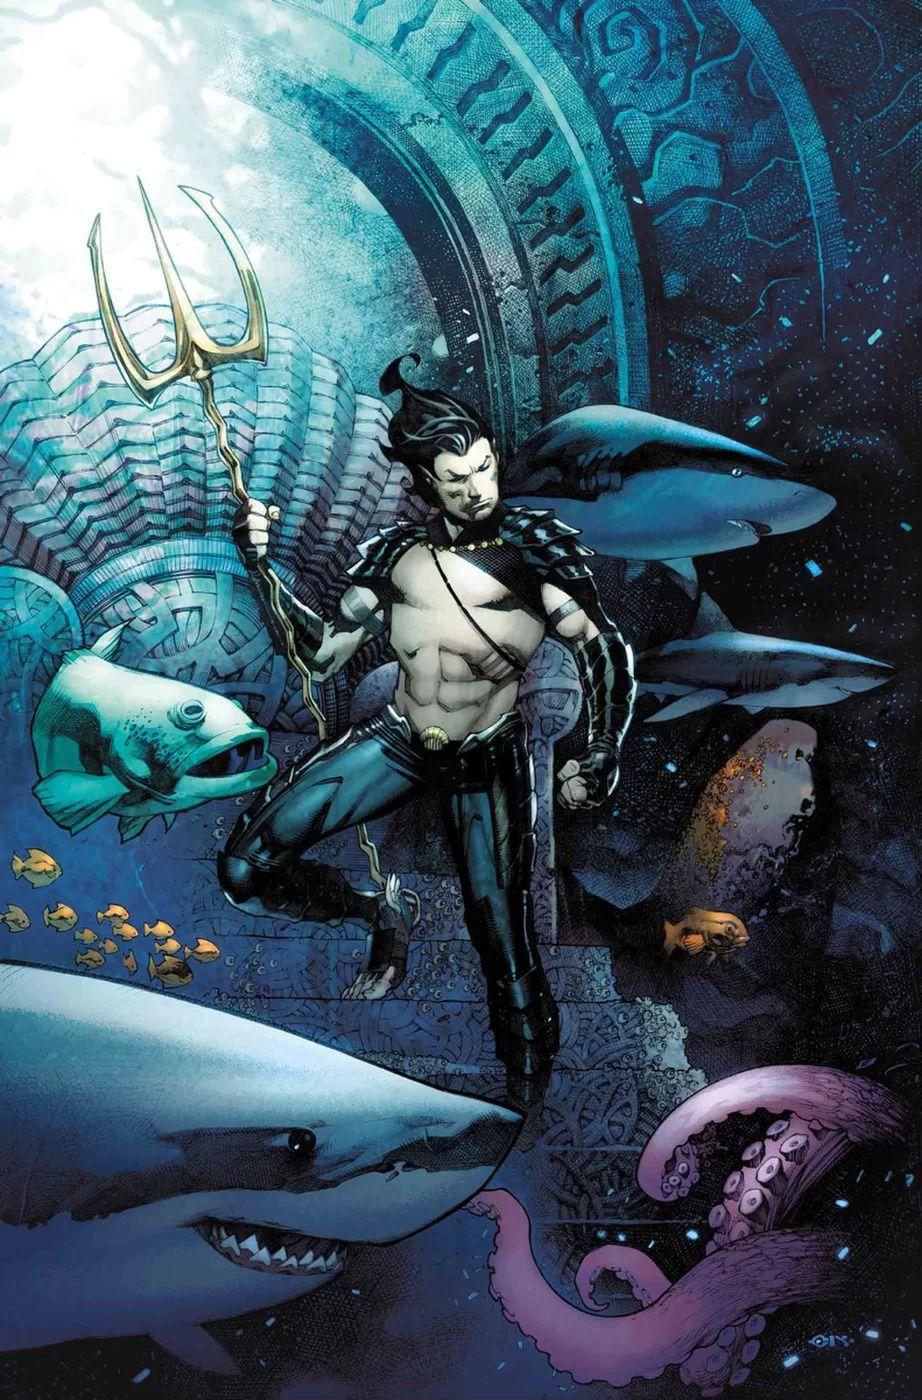 Namor screenshots, image and pictures